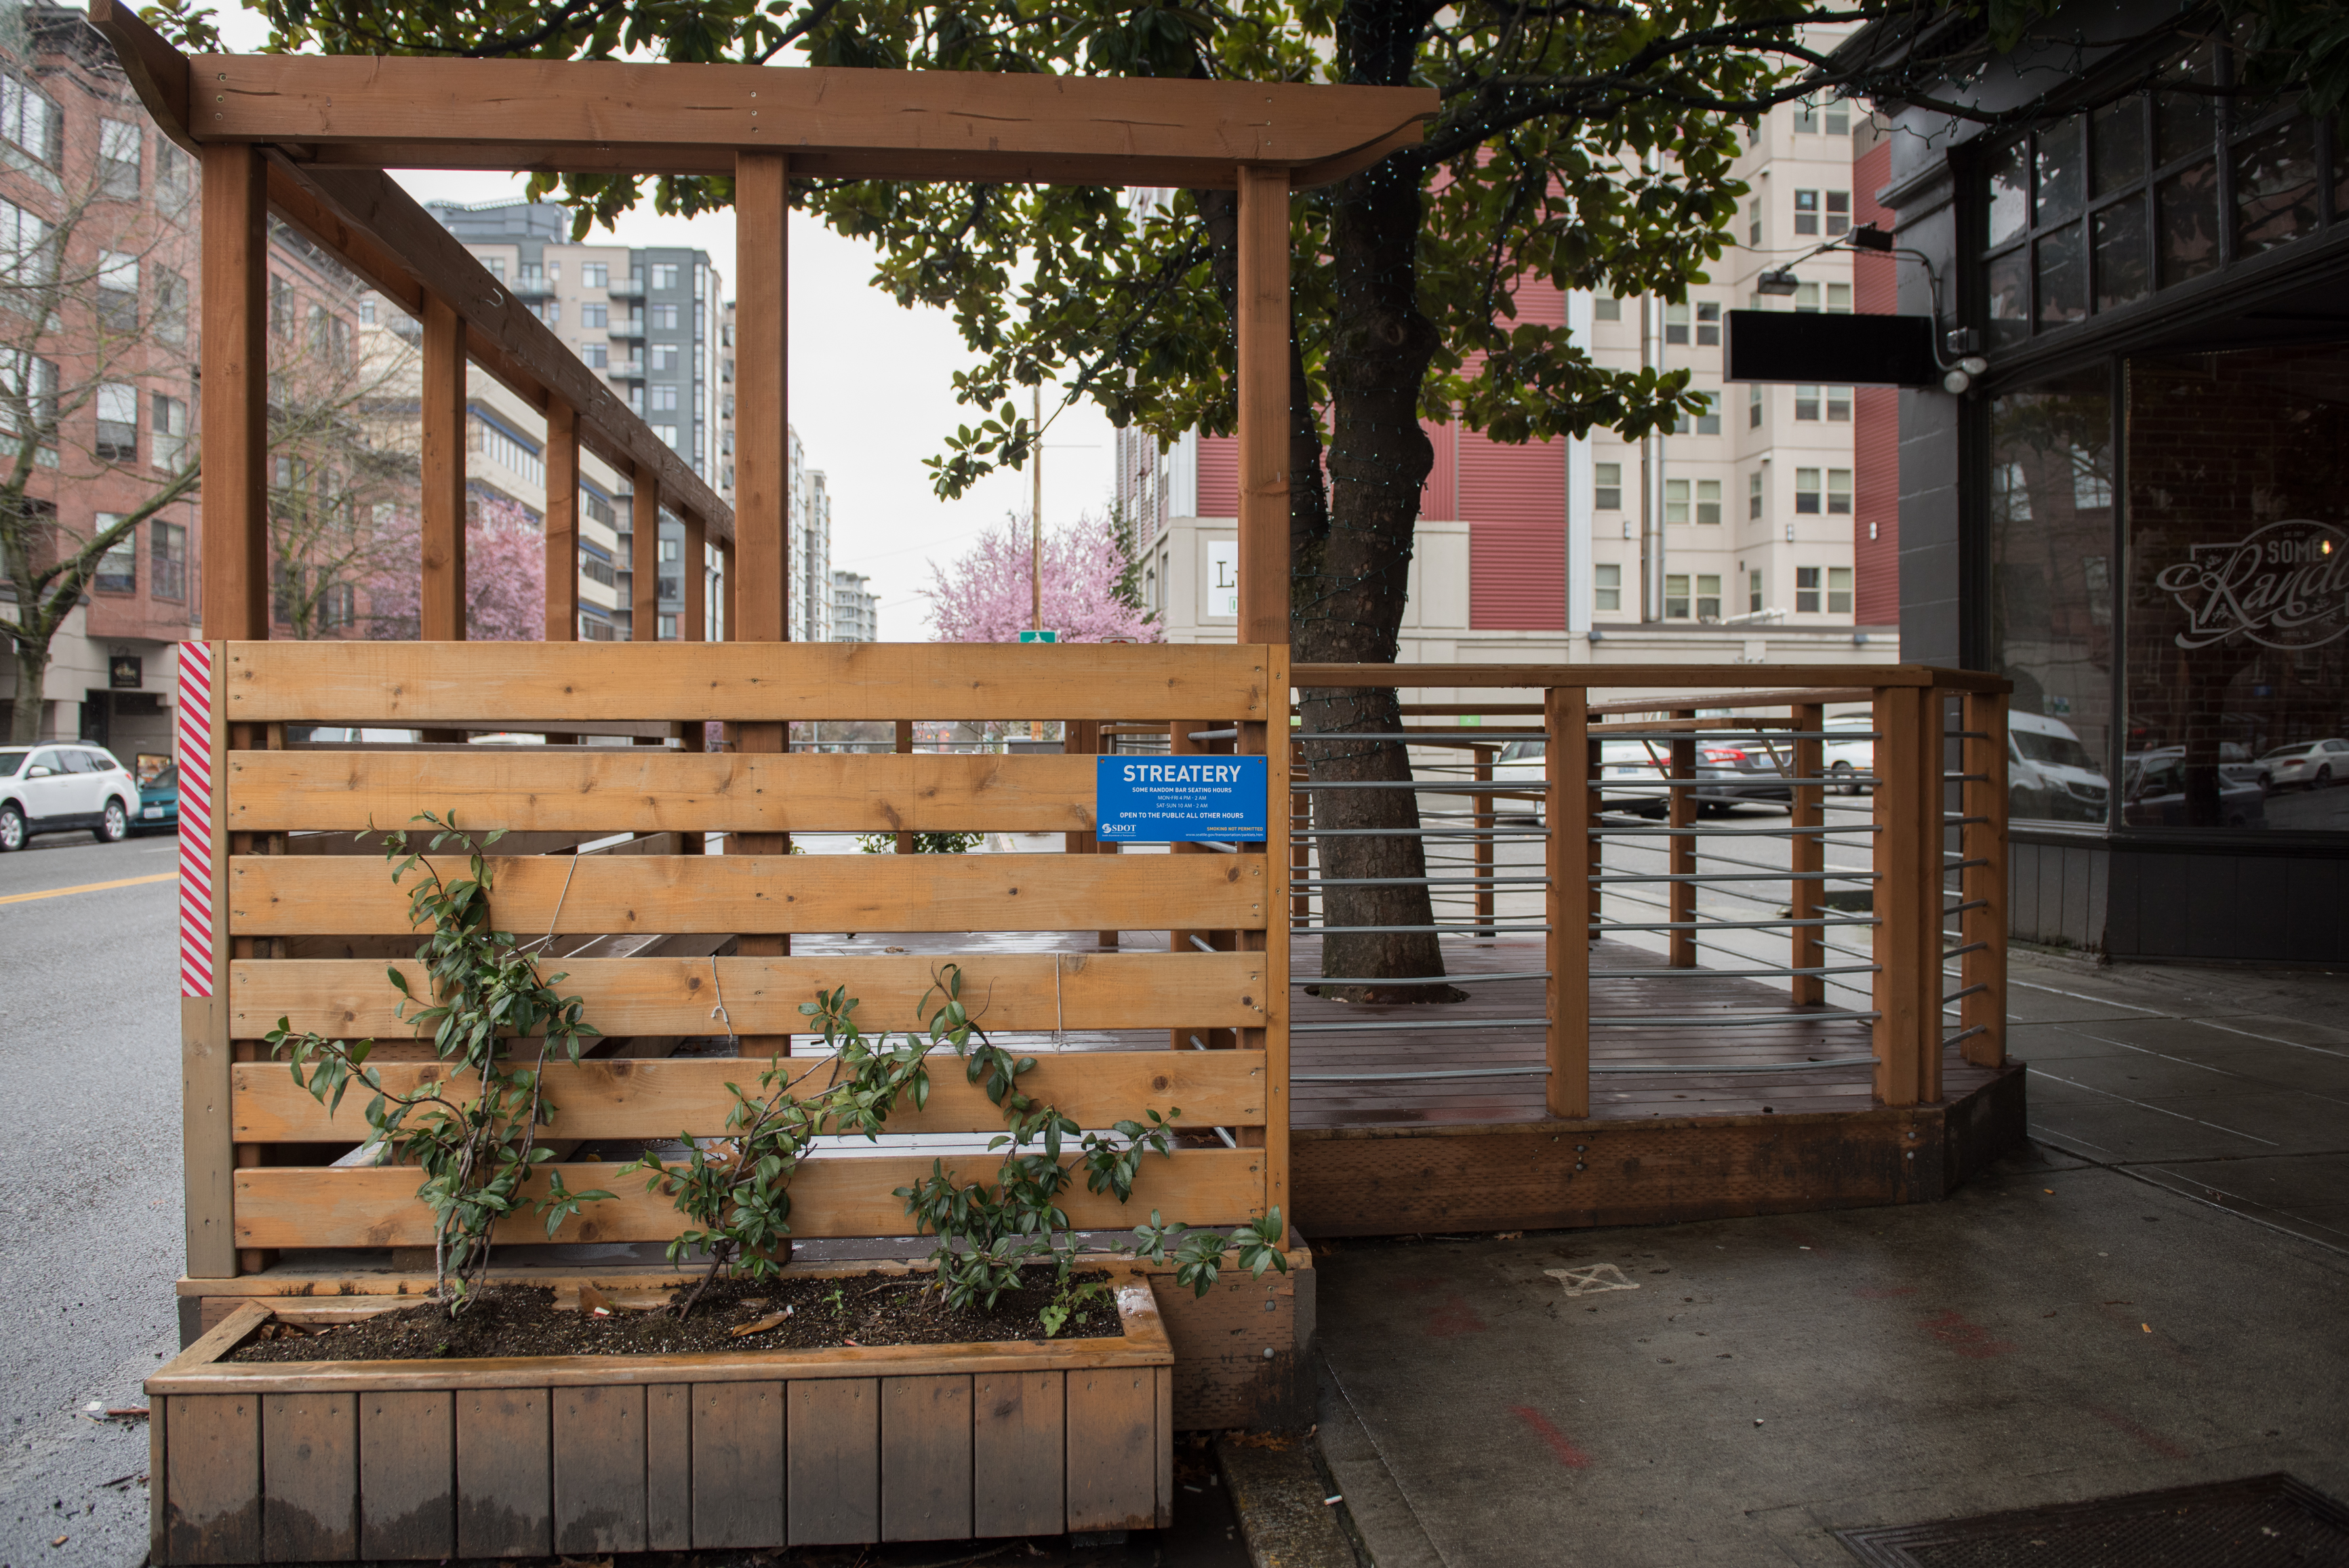 Some Random Bar Streatery: The Some Random Bar streatery is Seattle's second petite park to make the switch. (Image: Natalia Dotto)